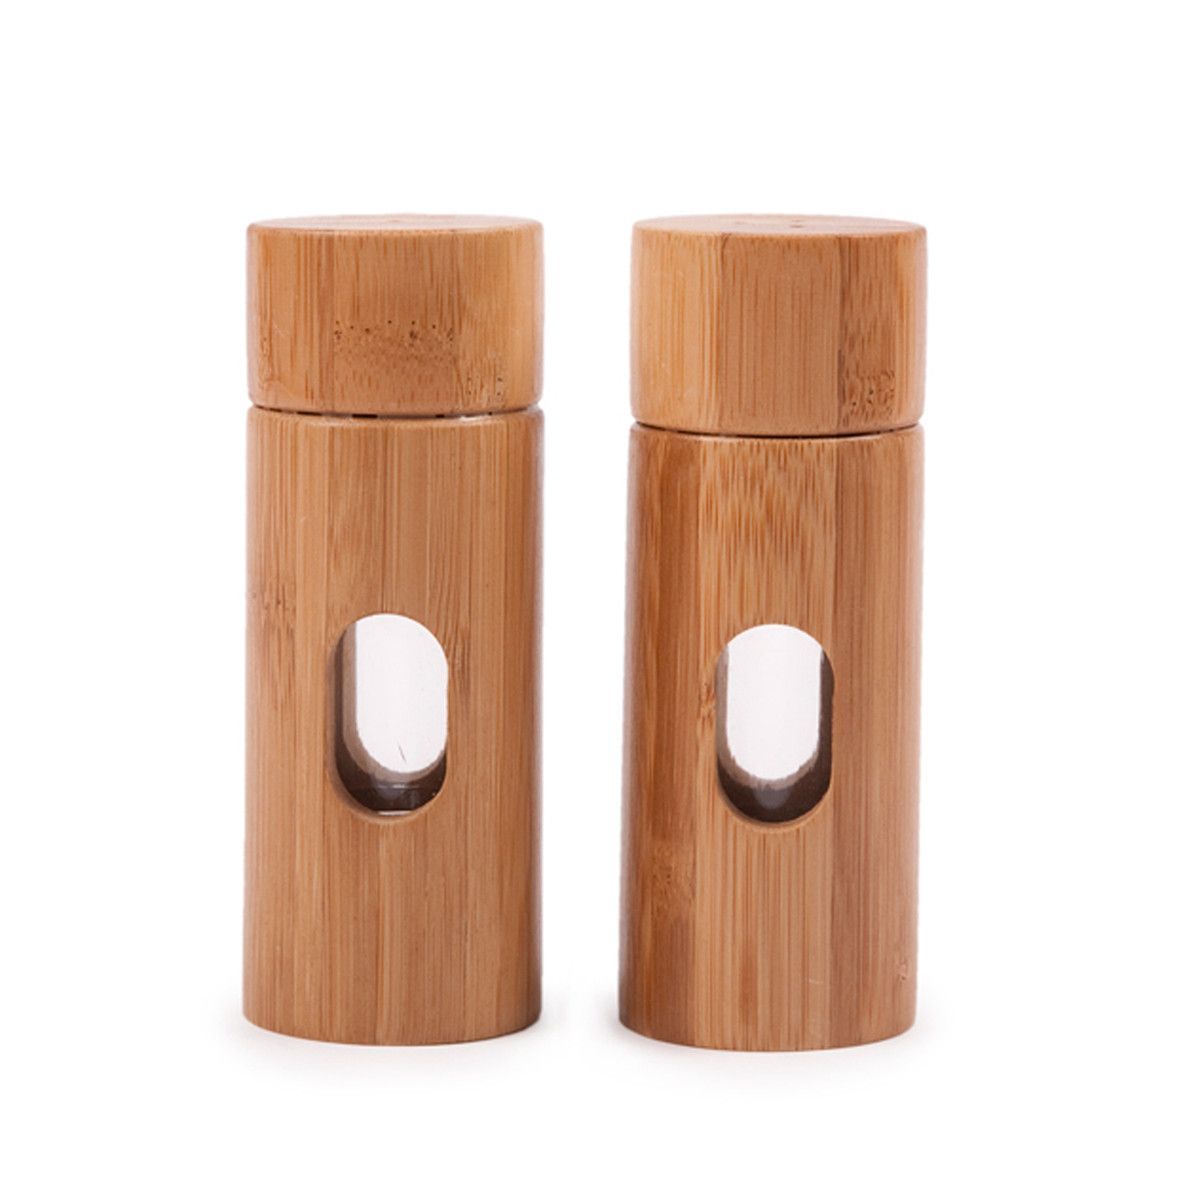 Modern Salt Pepper Shakers Contemporary Salt Pepper Shakers Home Decor Pinterest Salt